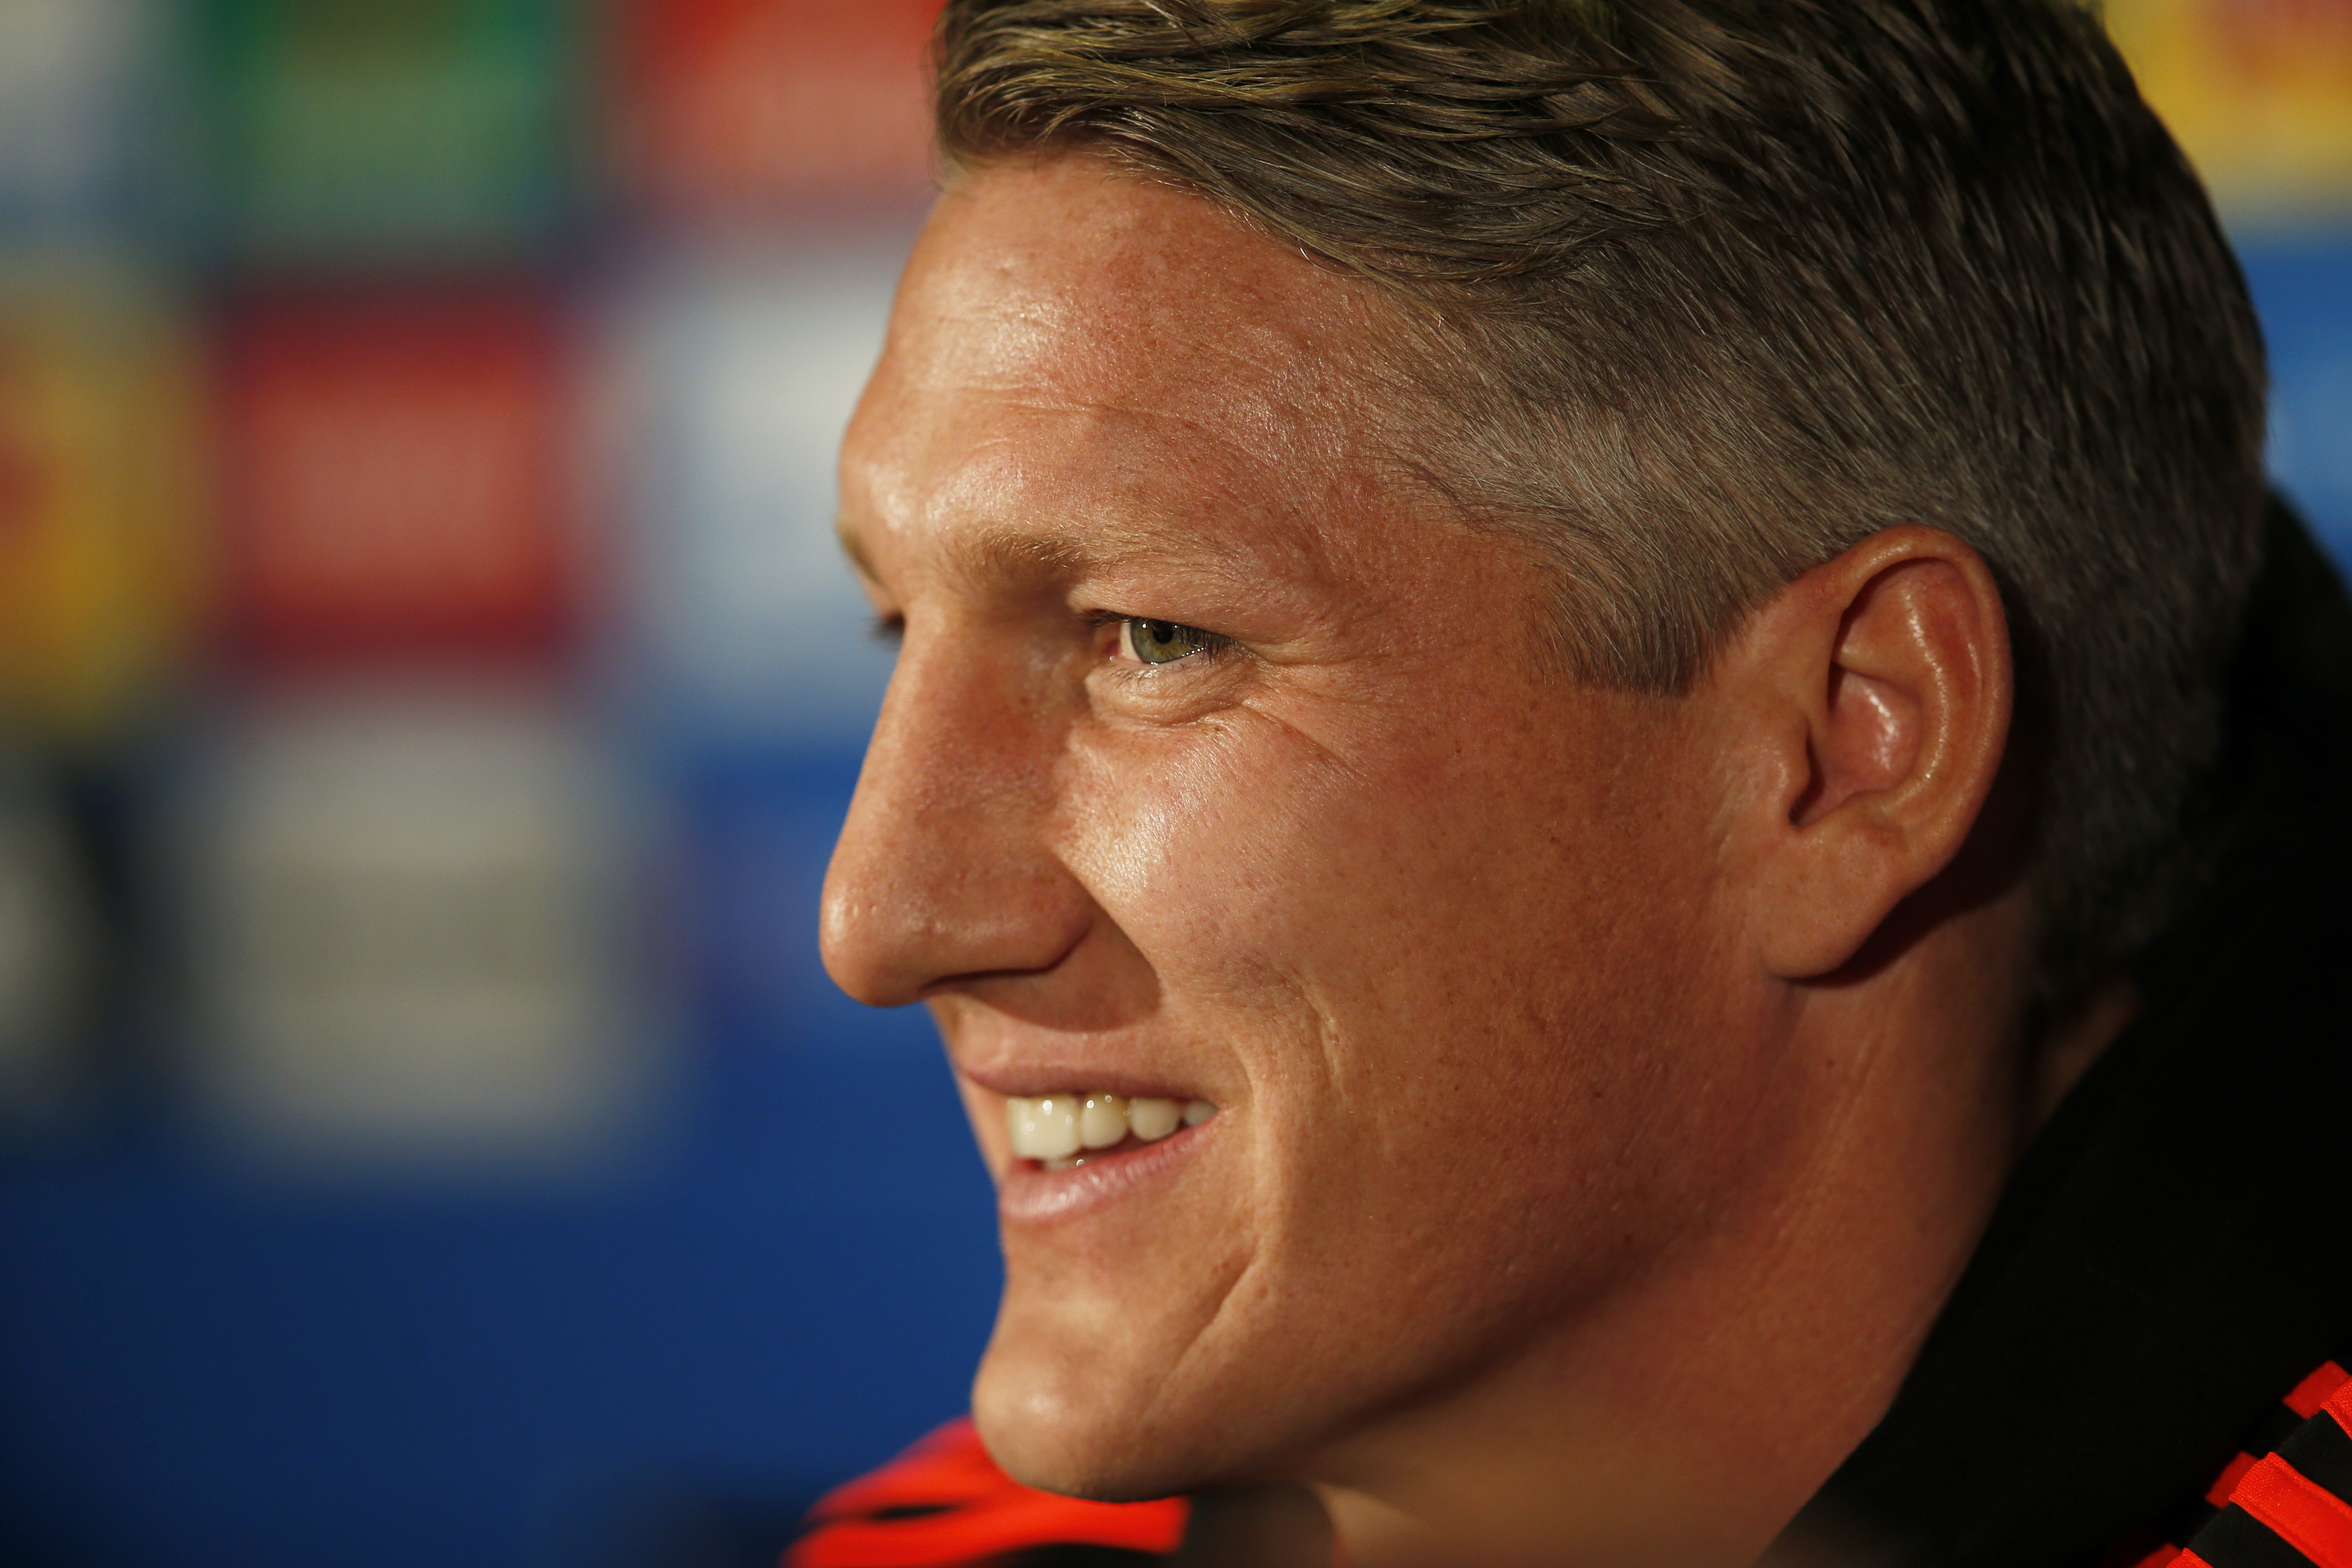 Football - Manchester United Press Conference - Old Trafford, Manchester, England - 29/9/15nManchester United's Bastian Schweinsteiger during the press conferencenAction Images via Reuters / Lee SmithnLivepicnEDITORIAL USE ONLY.